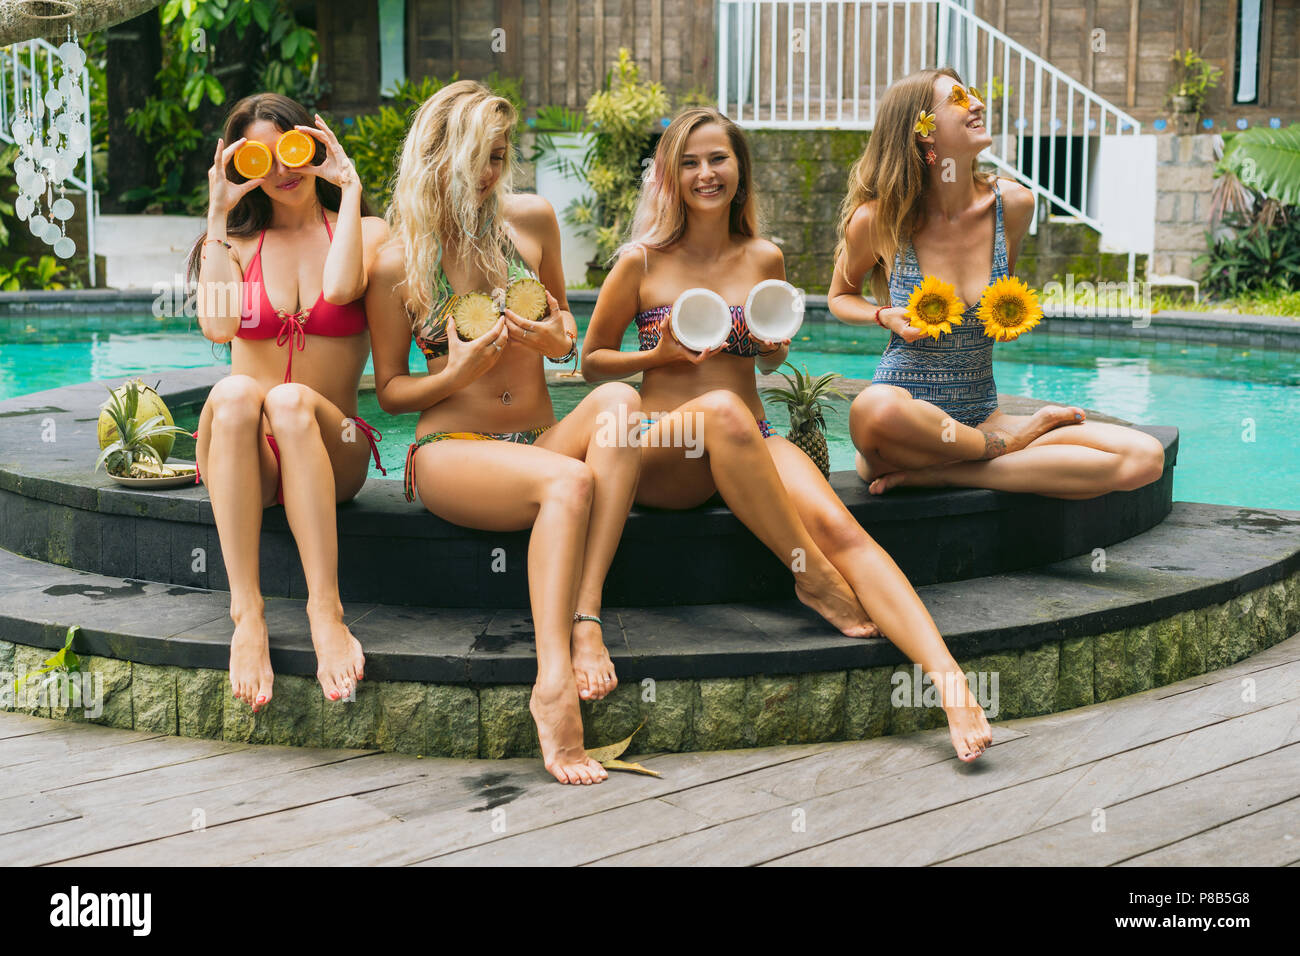 attractive girls in bikinis smiling and holding sliced tropical fruits near pool - Stock Image